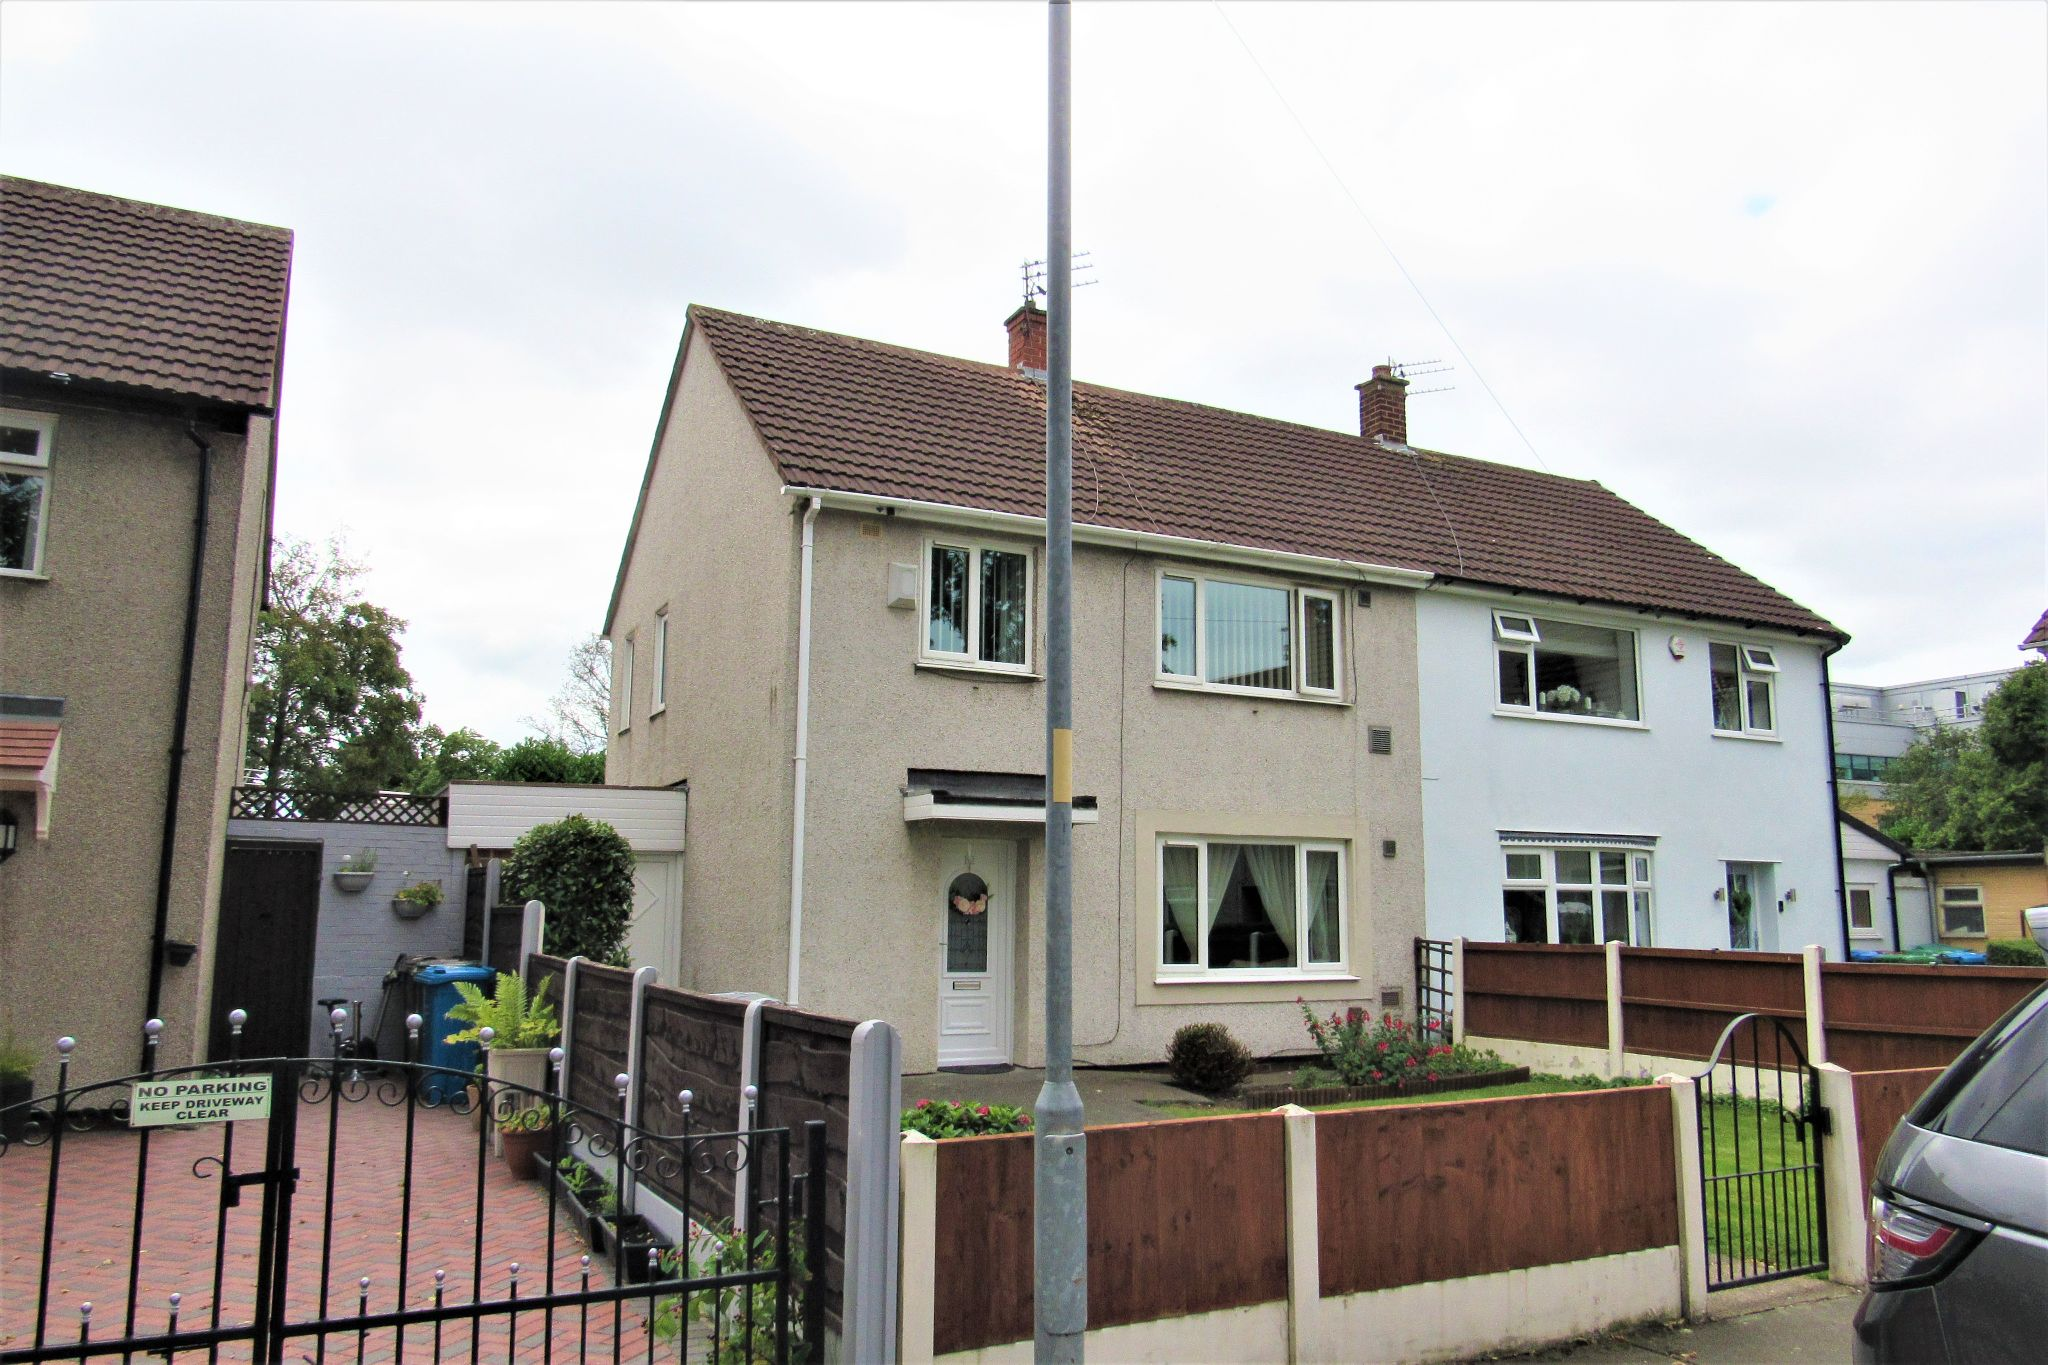 3 bedroom semi-detached house SSTC in Manchester - Photograph 21.